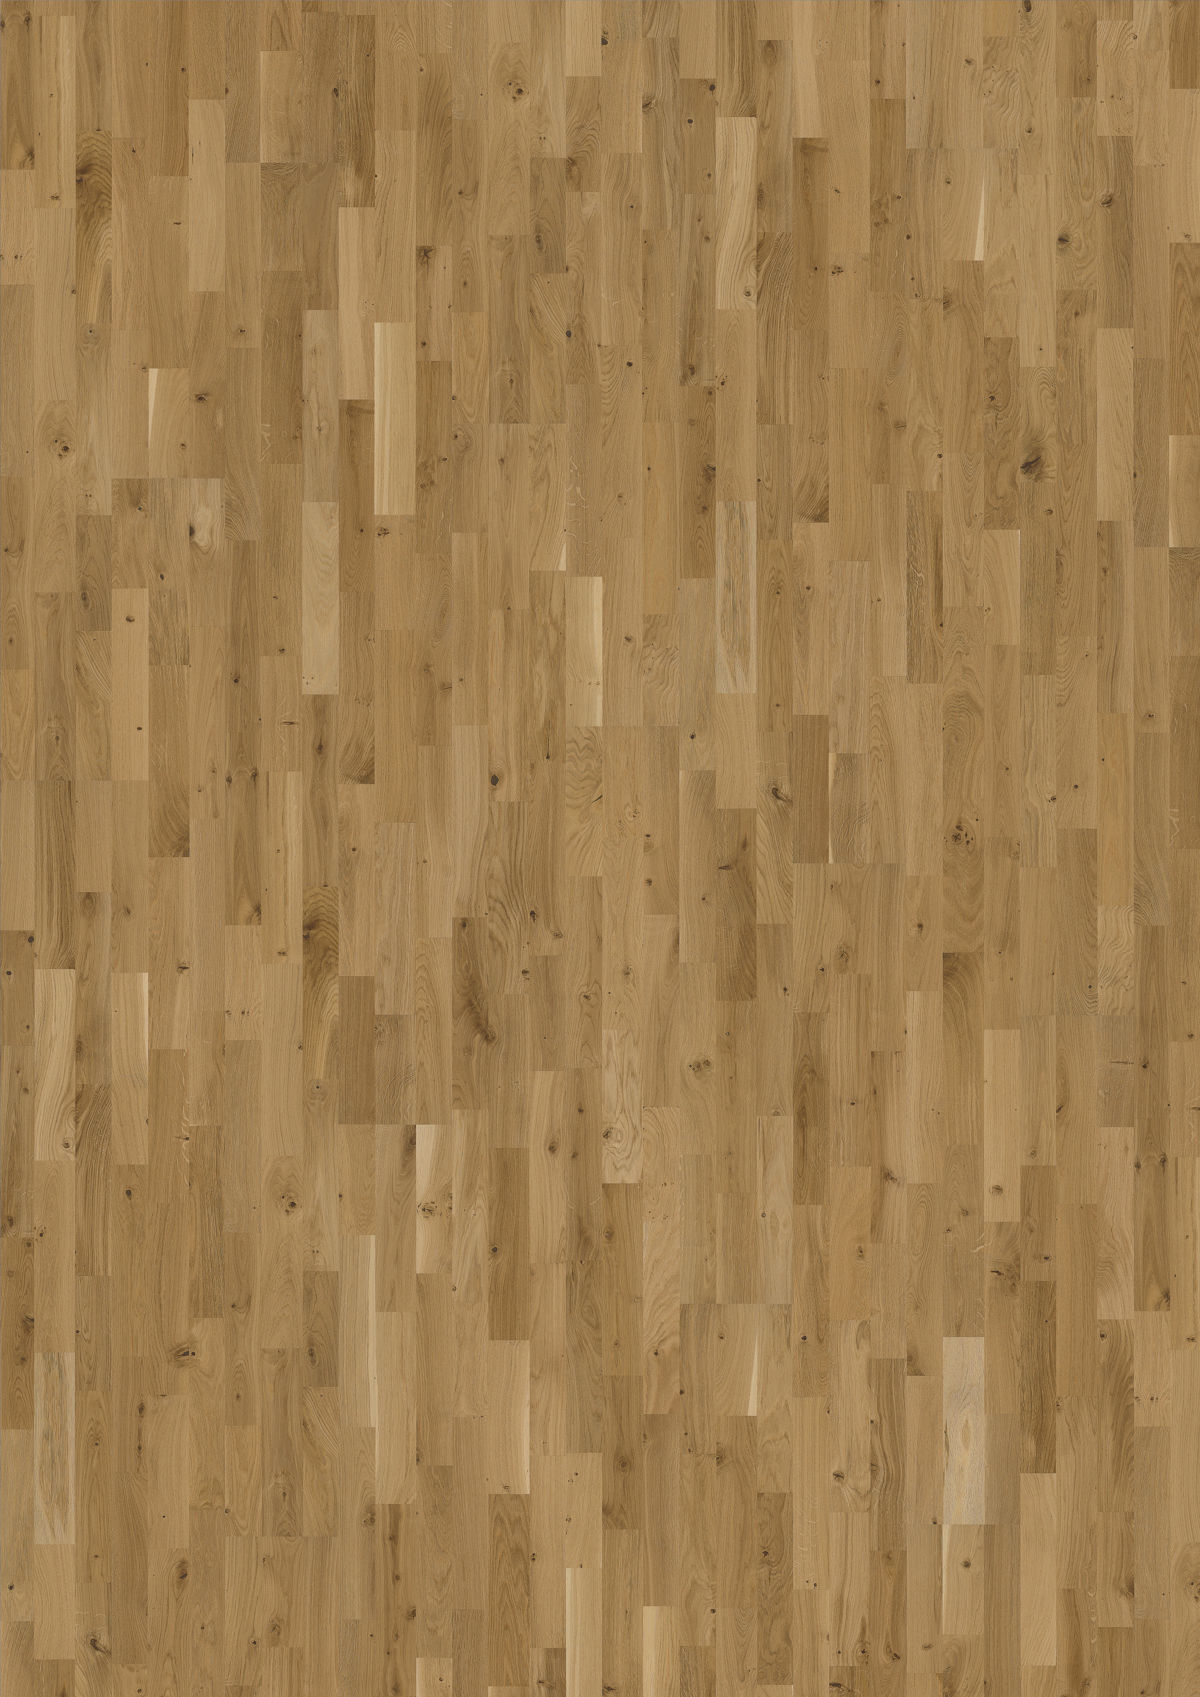 kahrs oak erve engineered wood flooring. Black Bedroom Furniture Sets. Home Design Ideas